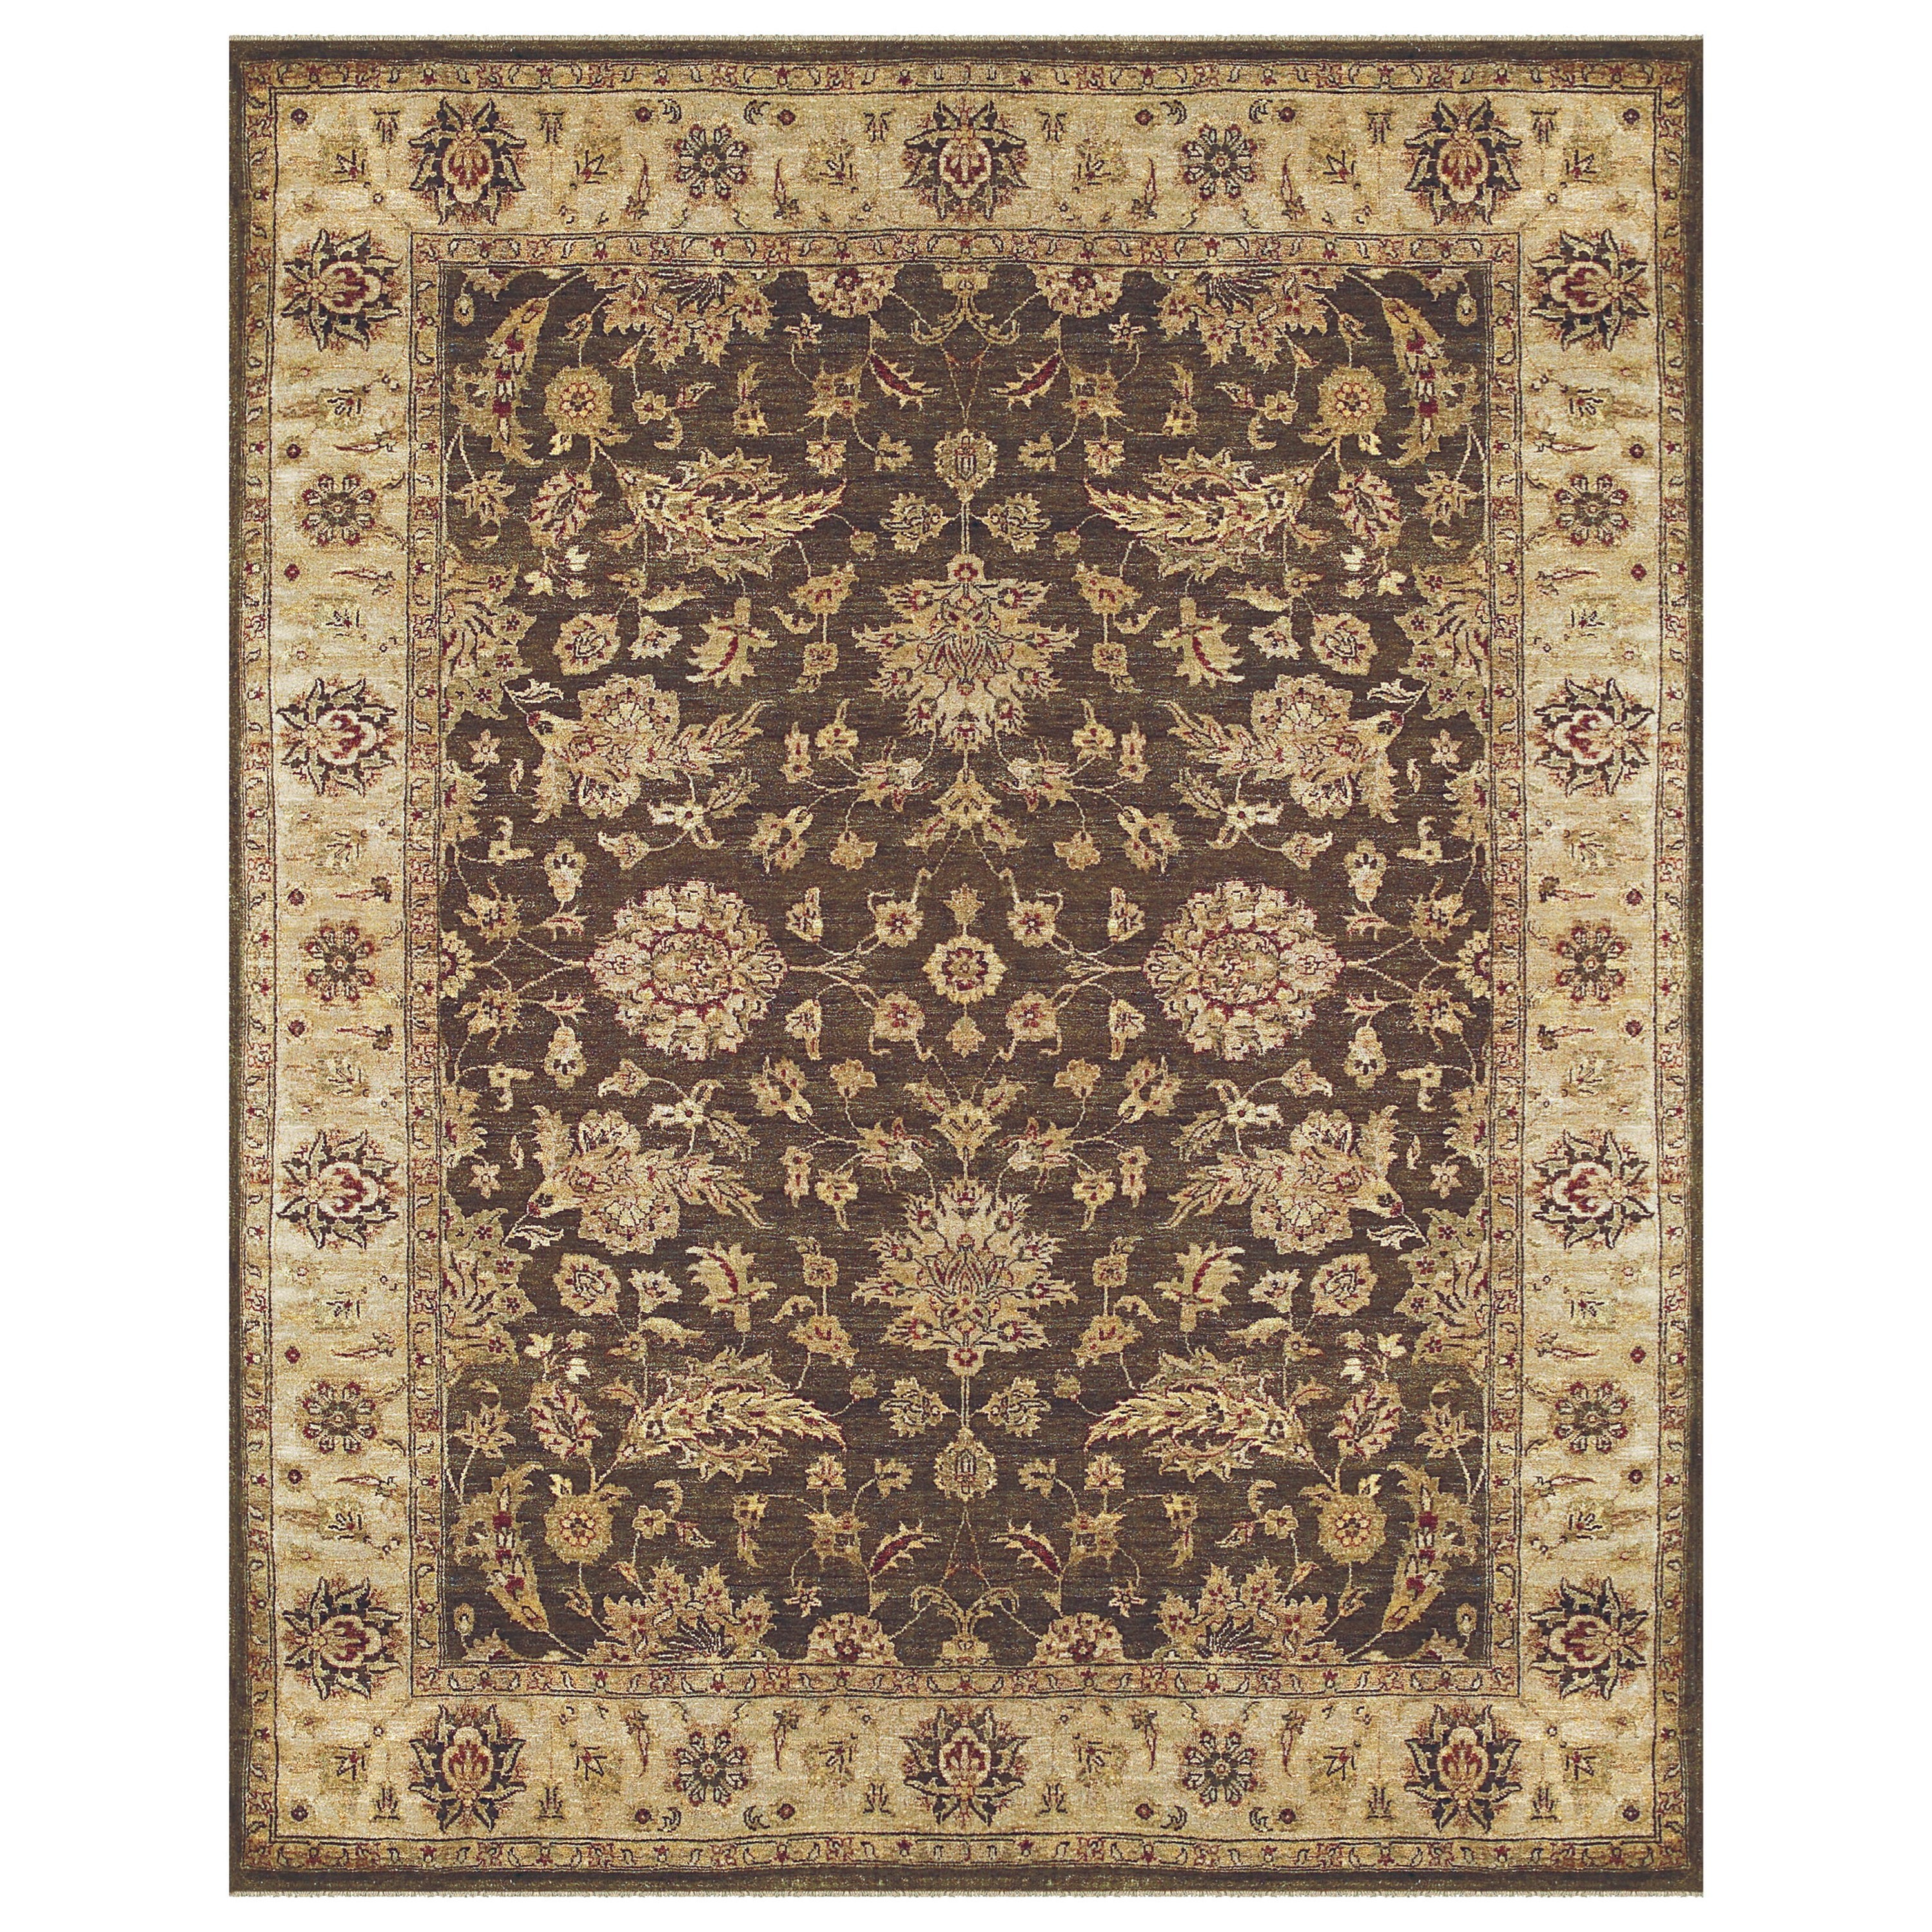 Drake Brown/Beige 4' x 6' Area Rug by Feizy Rugs at Jacksonville Furniture Mart